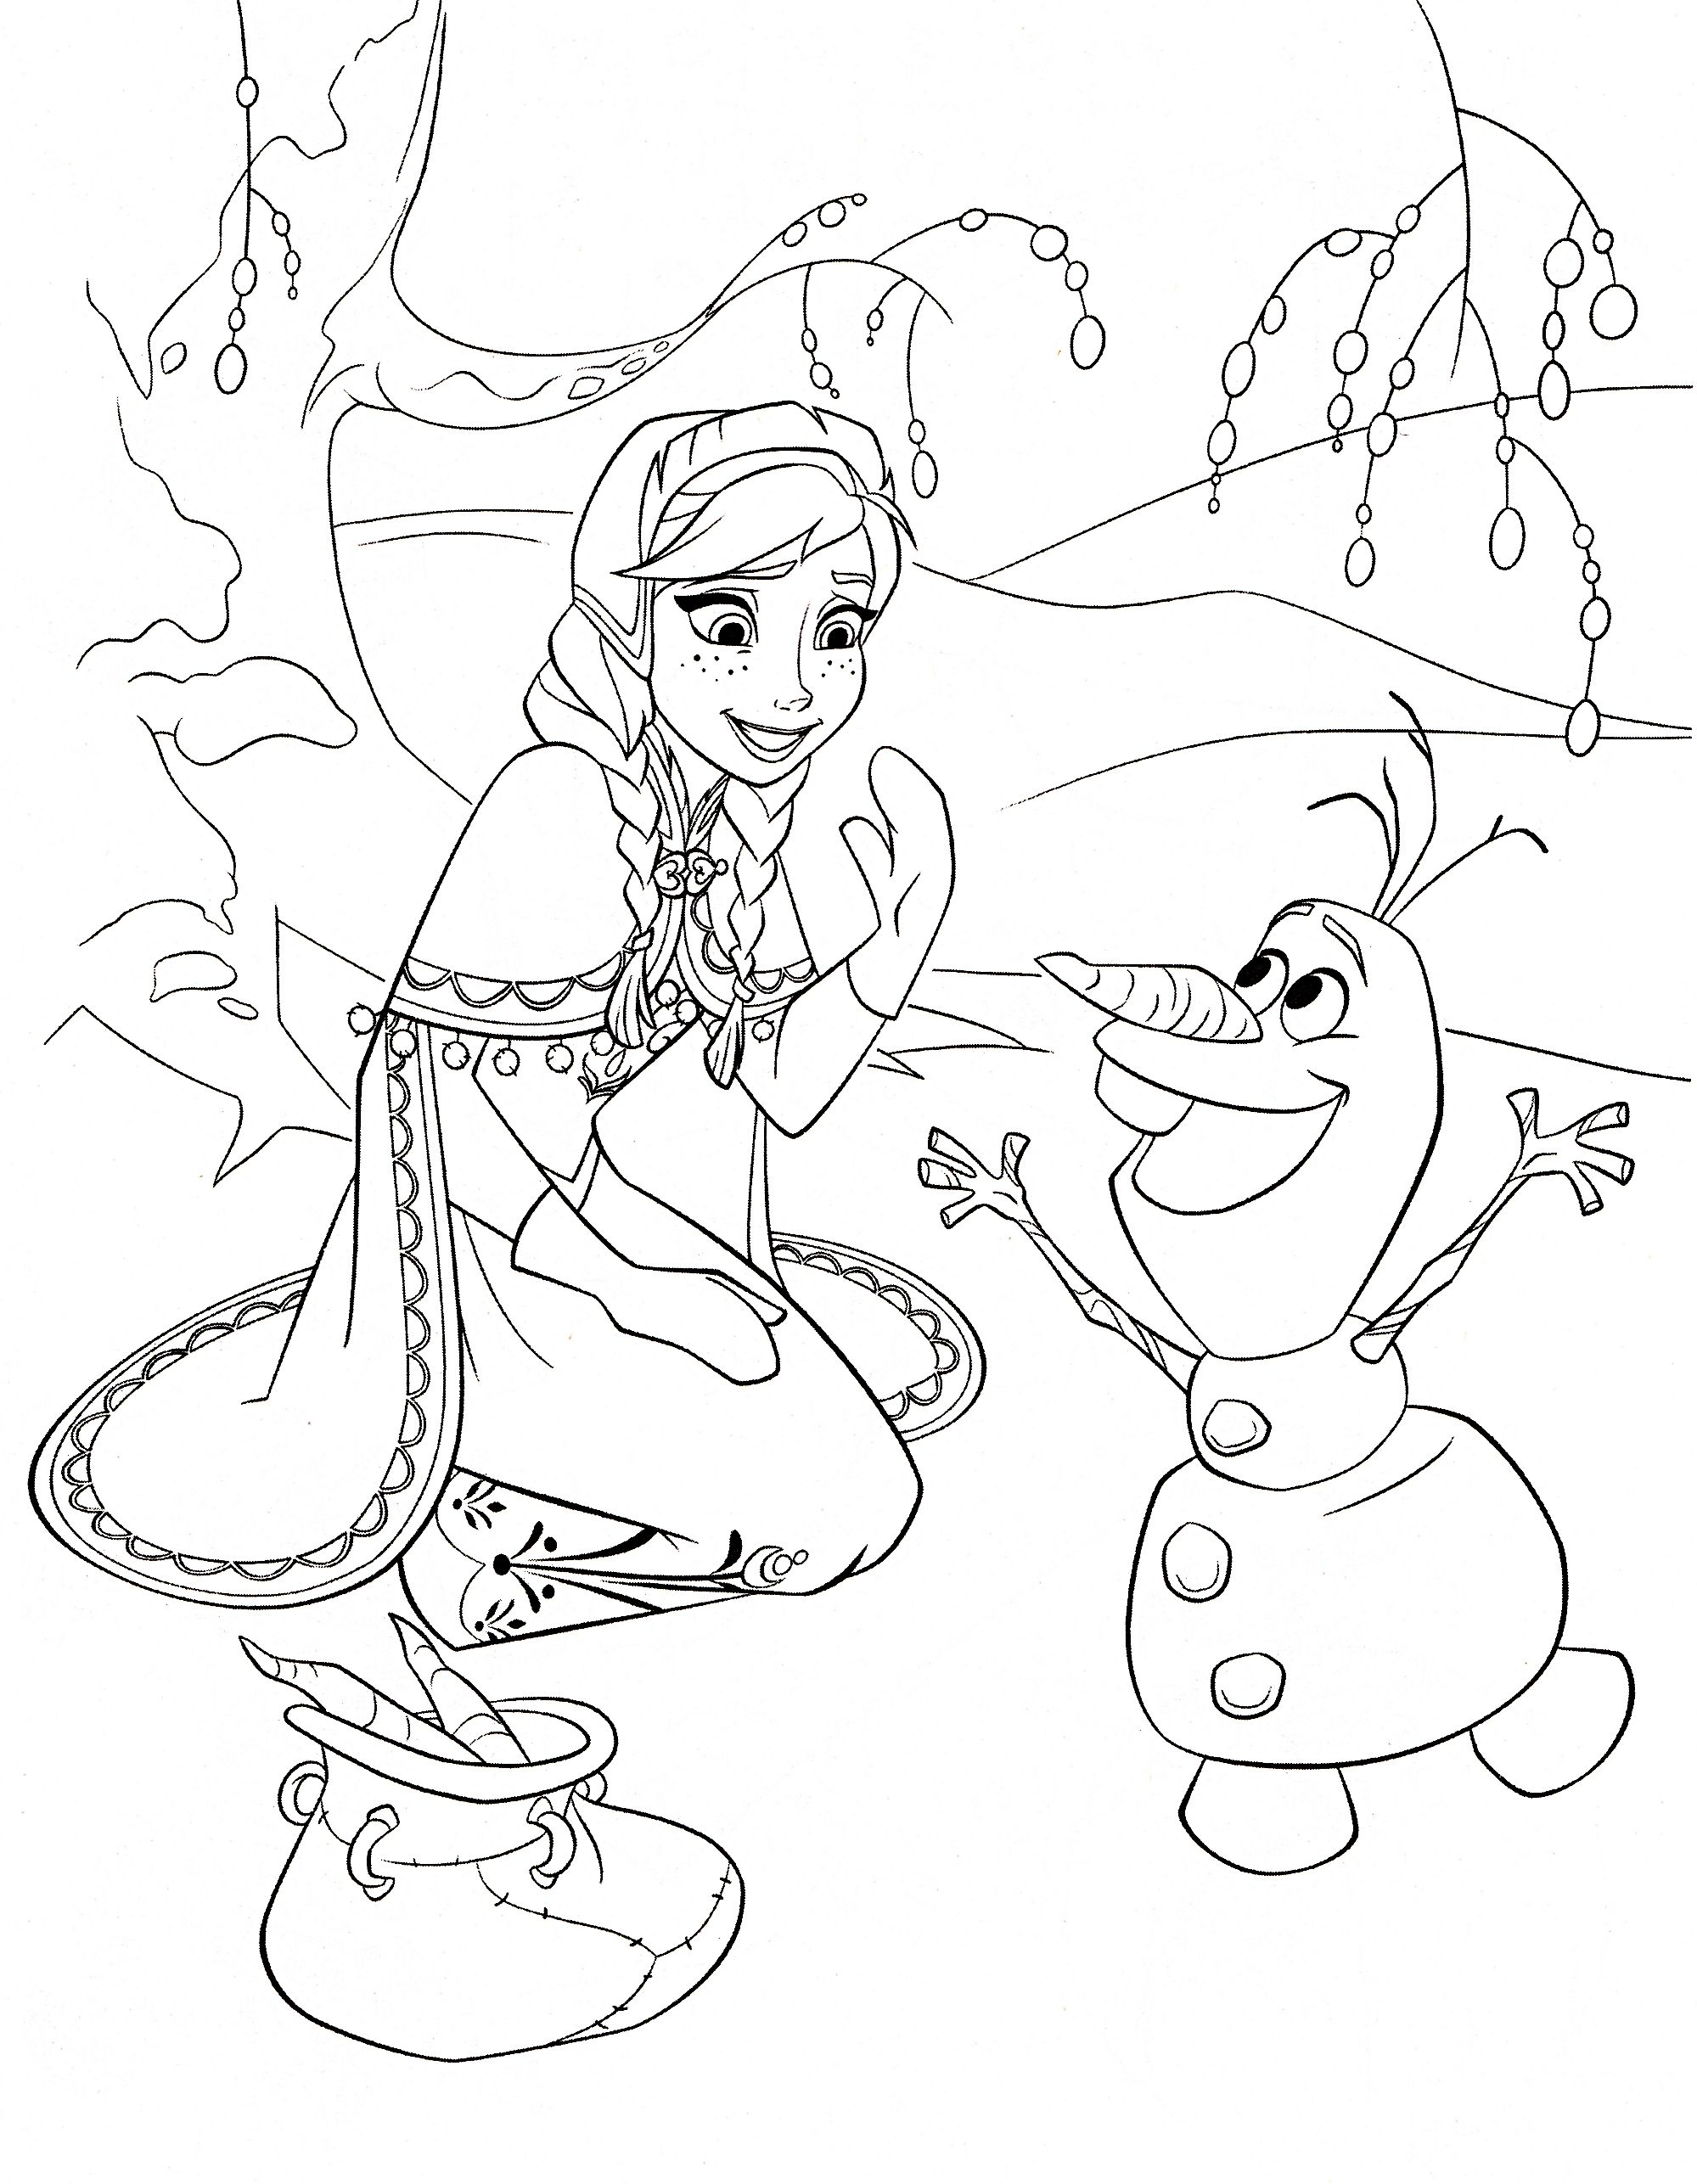 Disney coloring pages games online - Free Frozen Printable Coloring Activity Pages Plus Free Computer Games